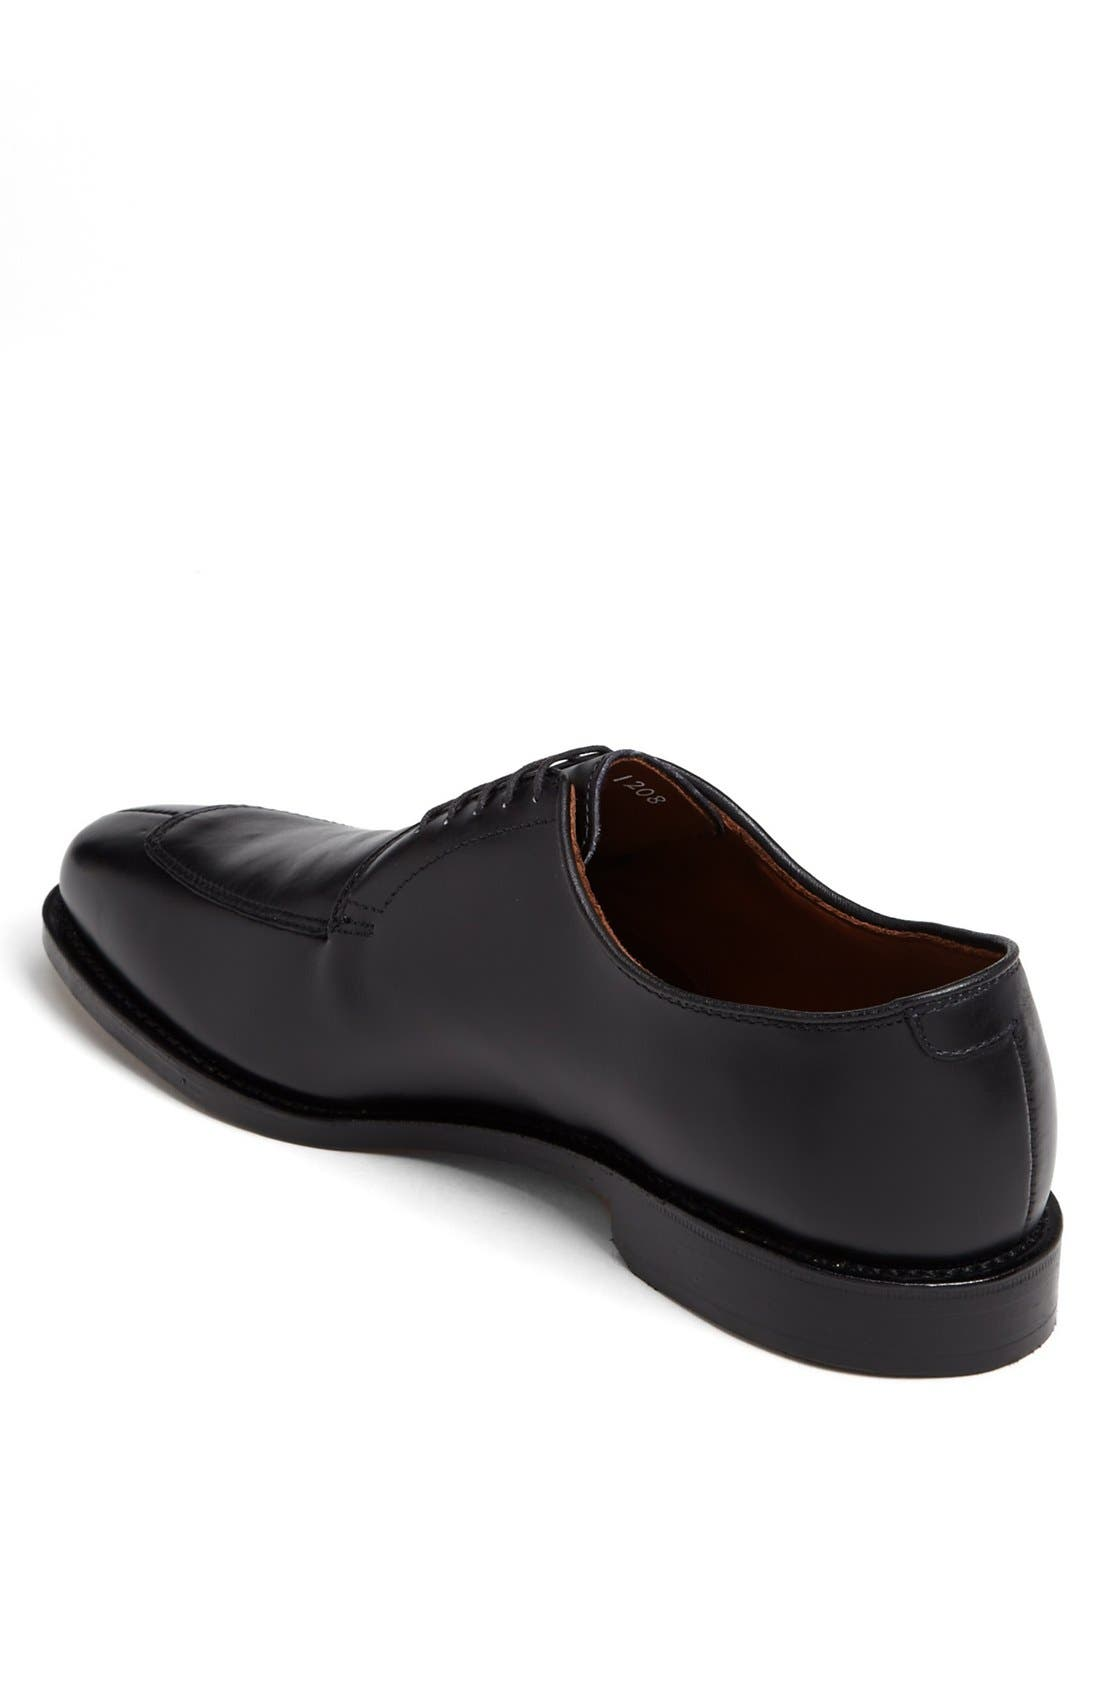 ALLEN EDMONDS, Delray Split Toe Derby, Alternate thumbnail 6, color, BLACK